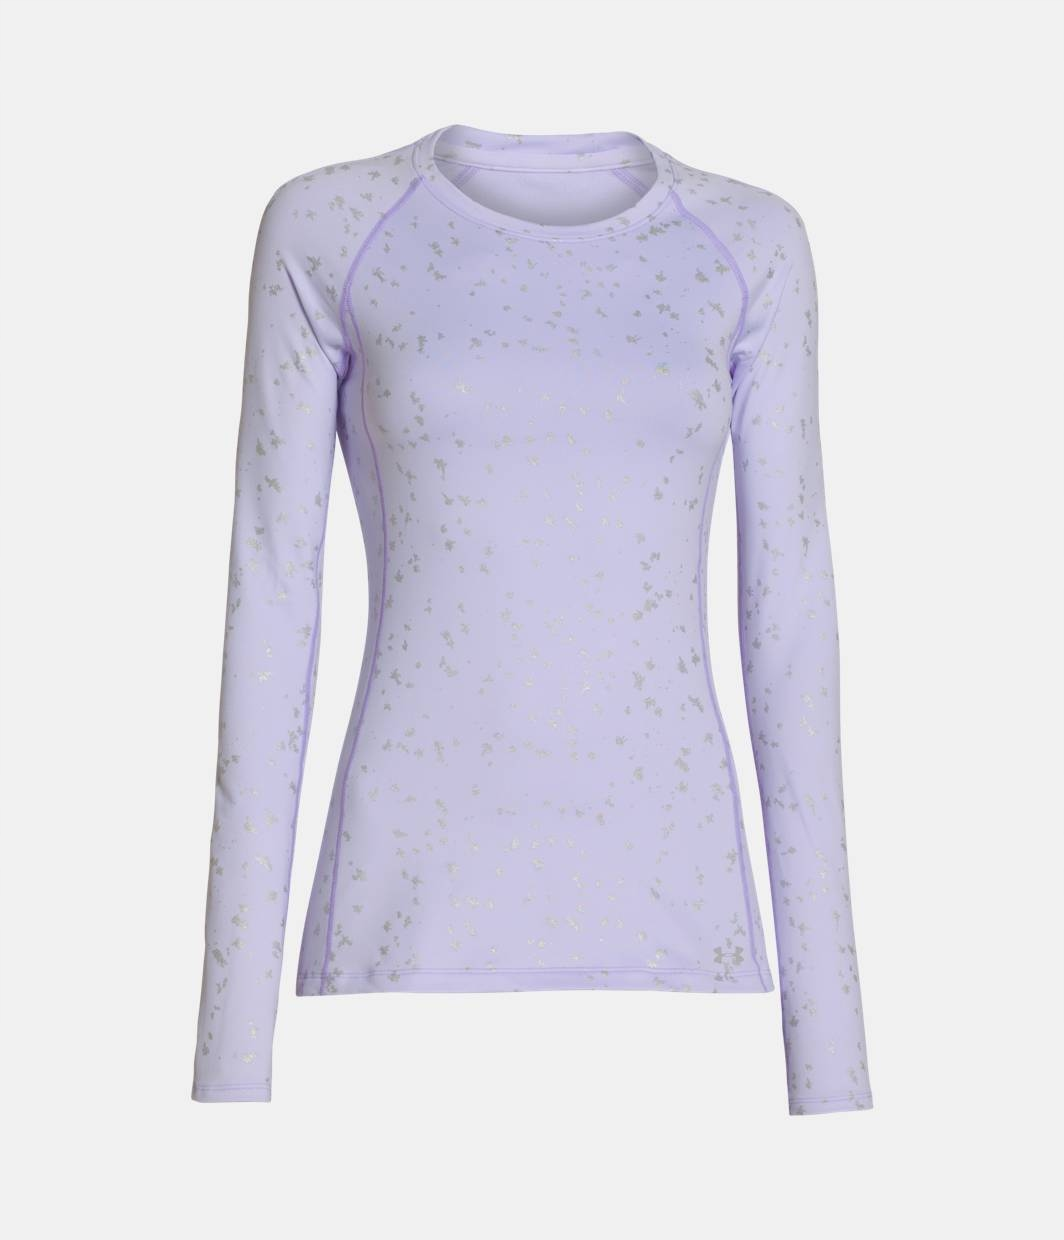 K2882 NOWA BLUZA UNDER ARMOUR FITTED COLDGEAR S